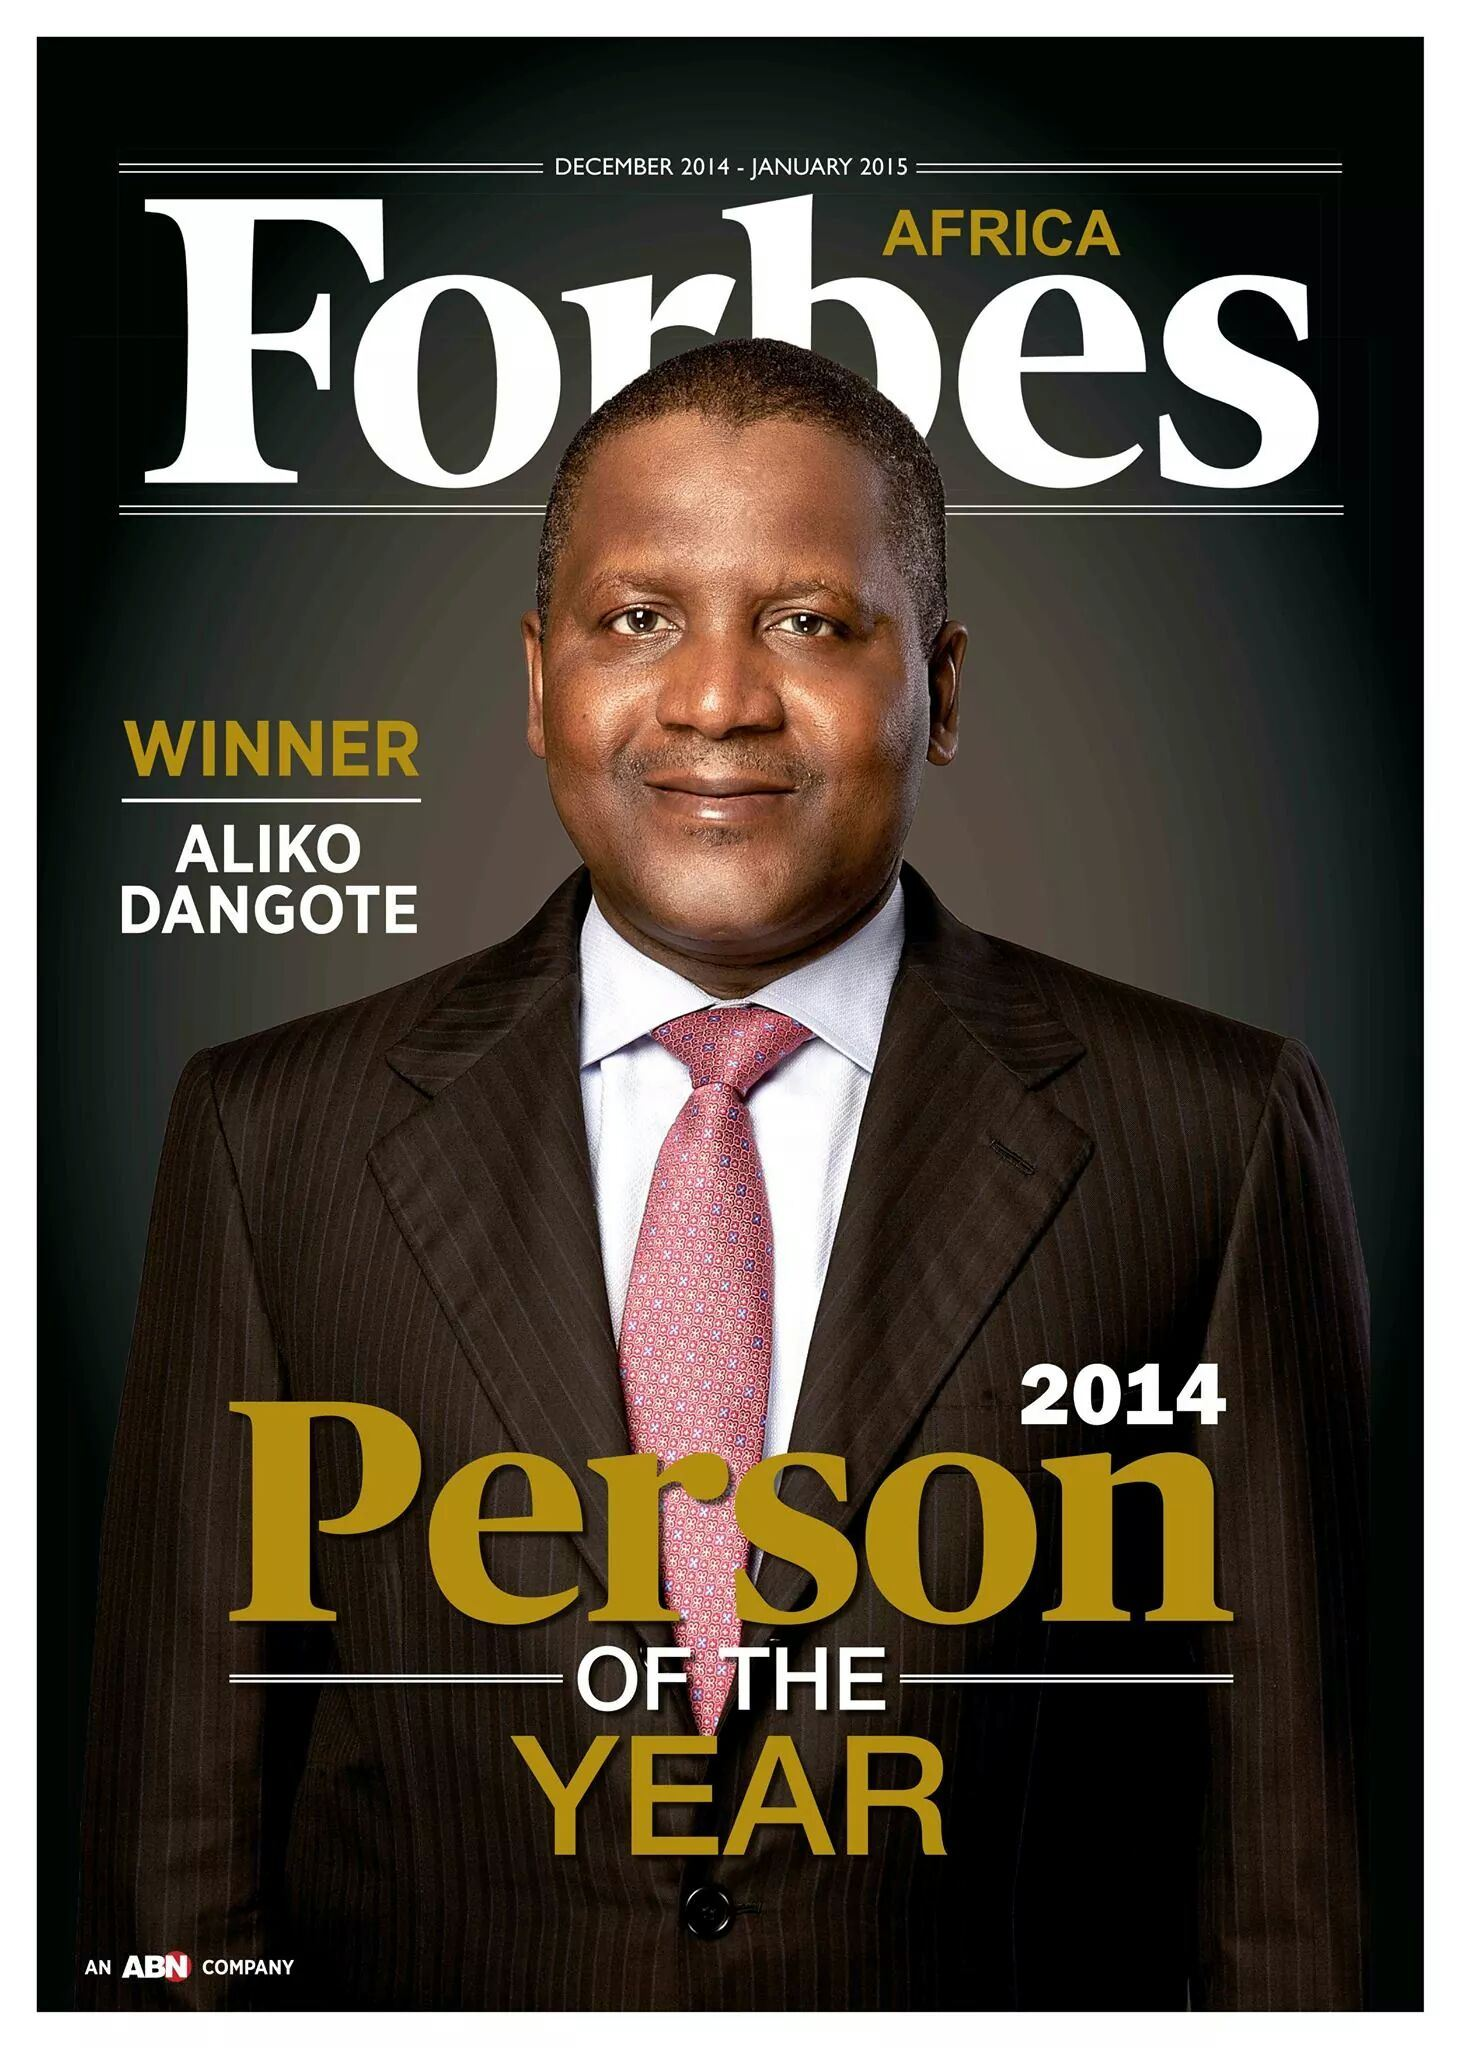 Forbes top 50 Richest in Africa 2014 List